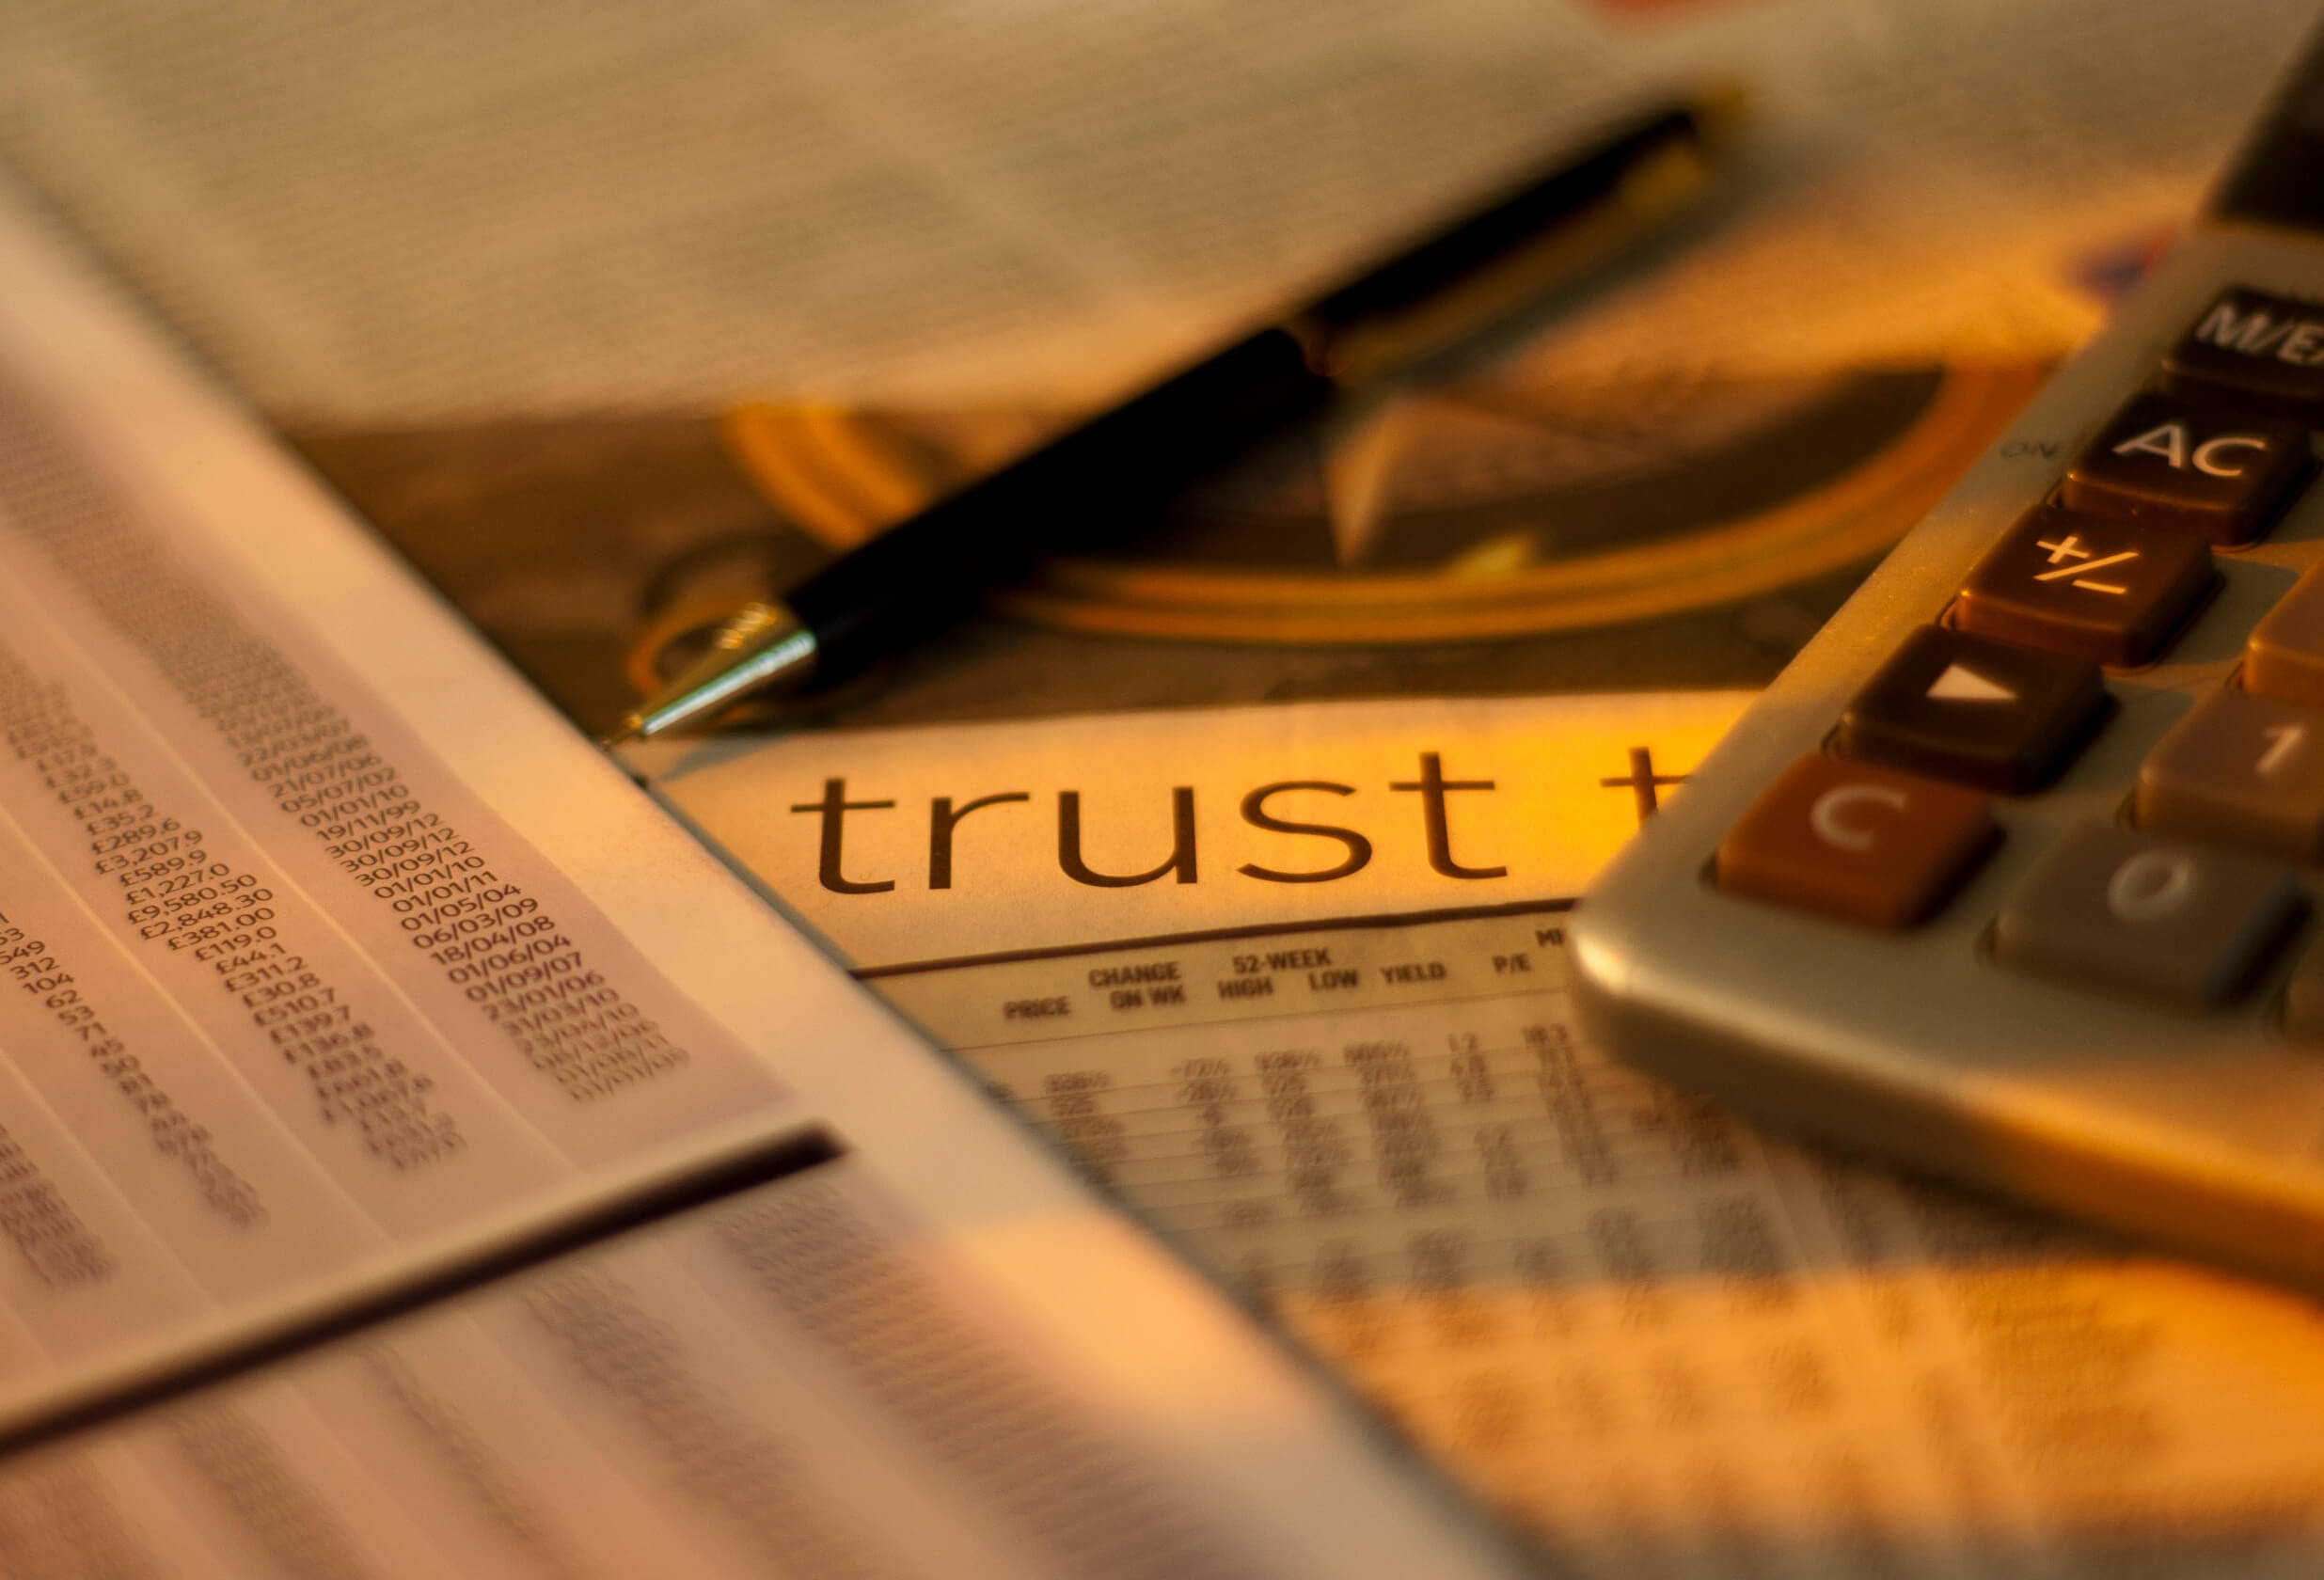 trusts are not for millionaires